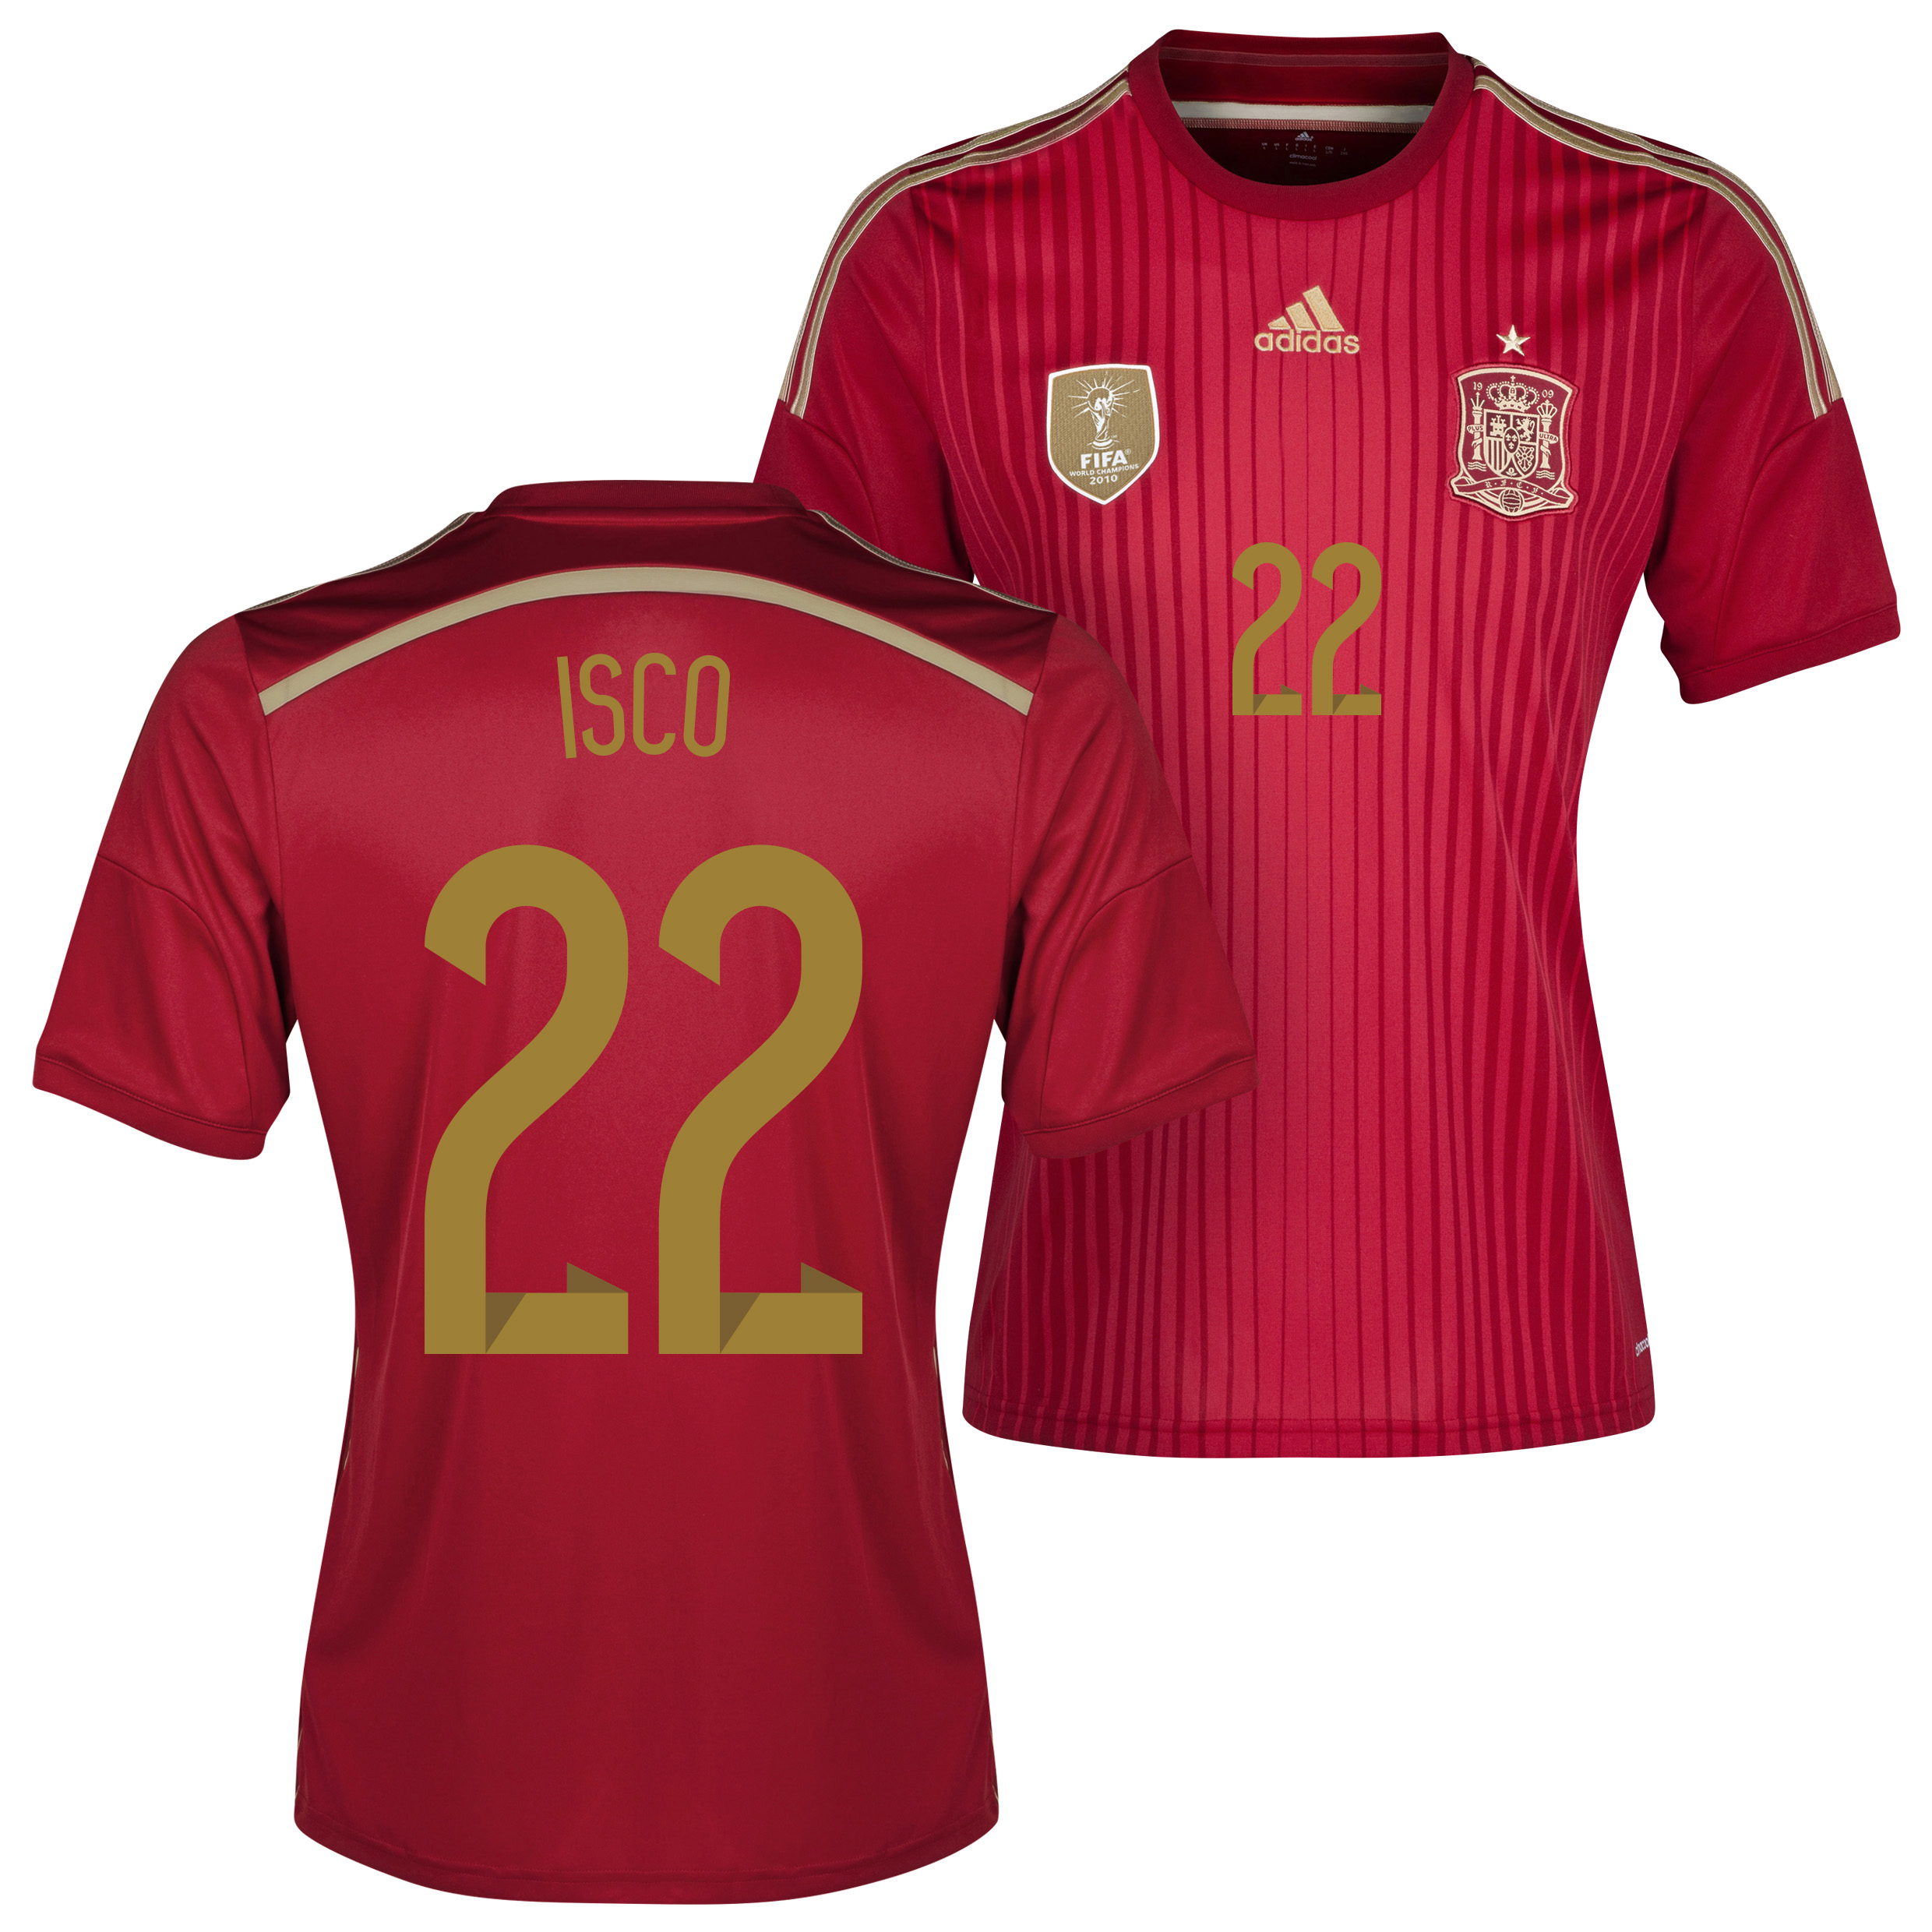 Spain Home Shirt 2013/15 with Isco 22 printing